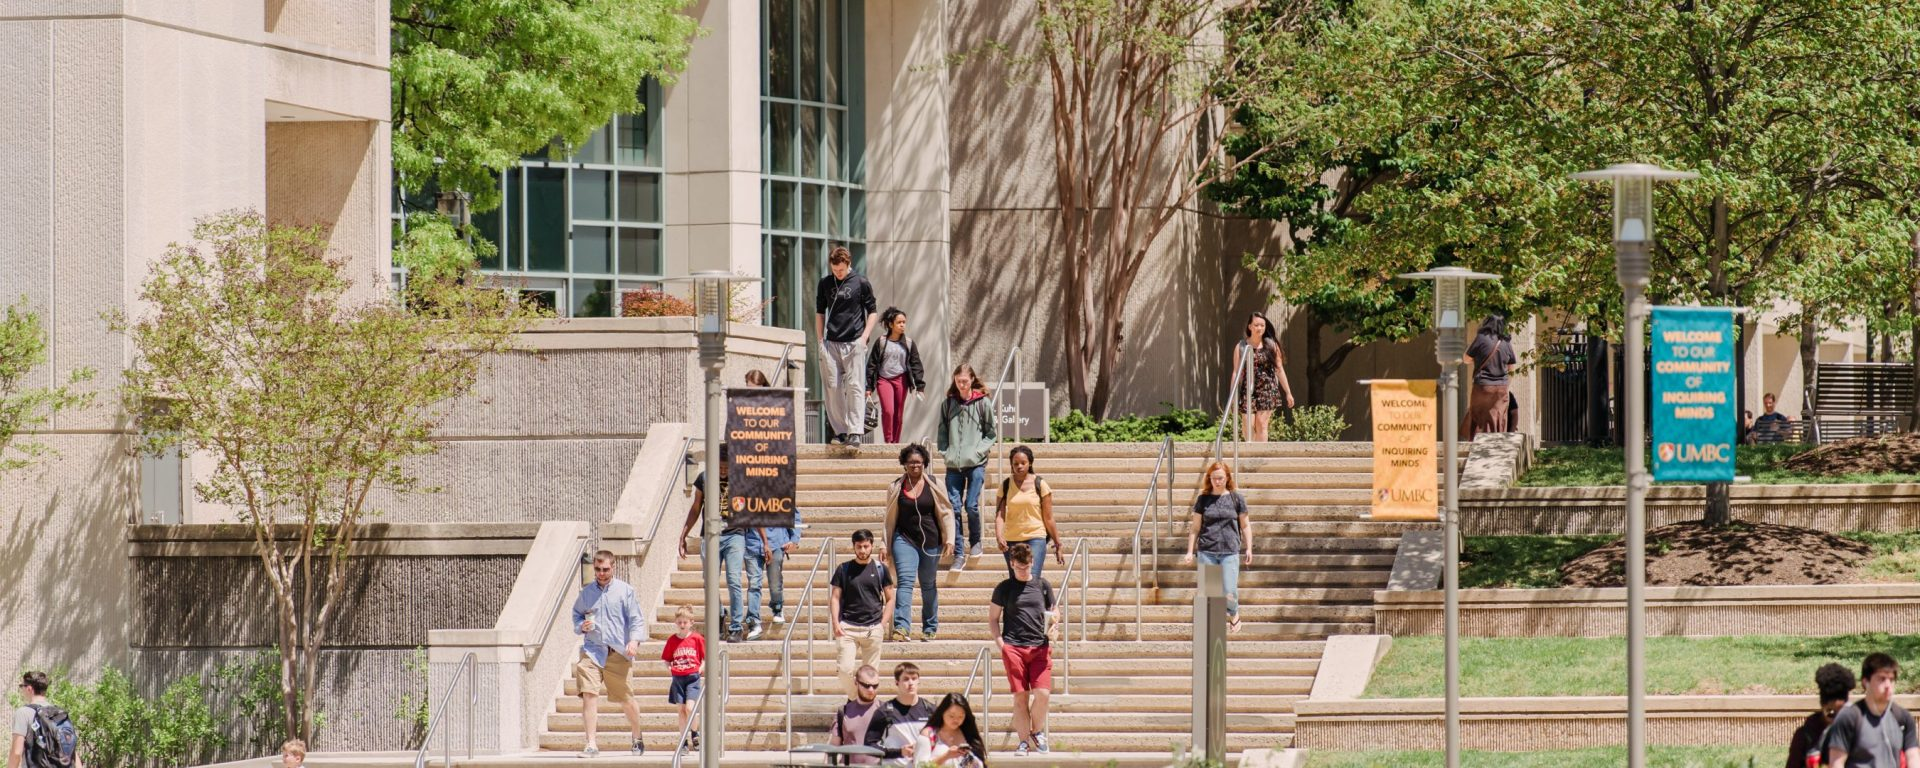 Students walk down stairs in front of a library, surrounded by spring plants, in the sunshine.